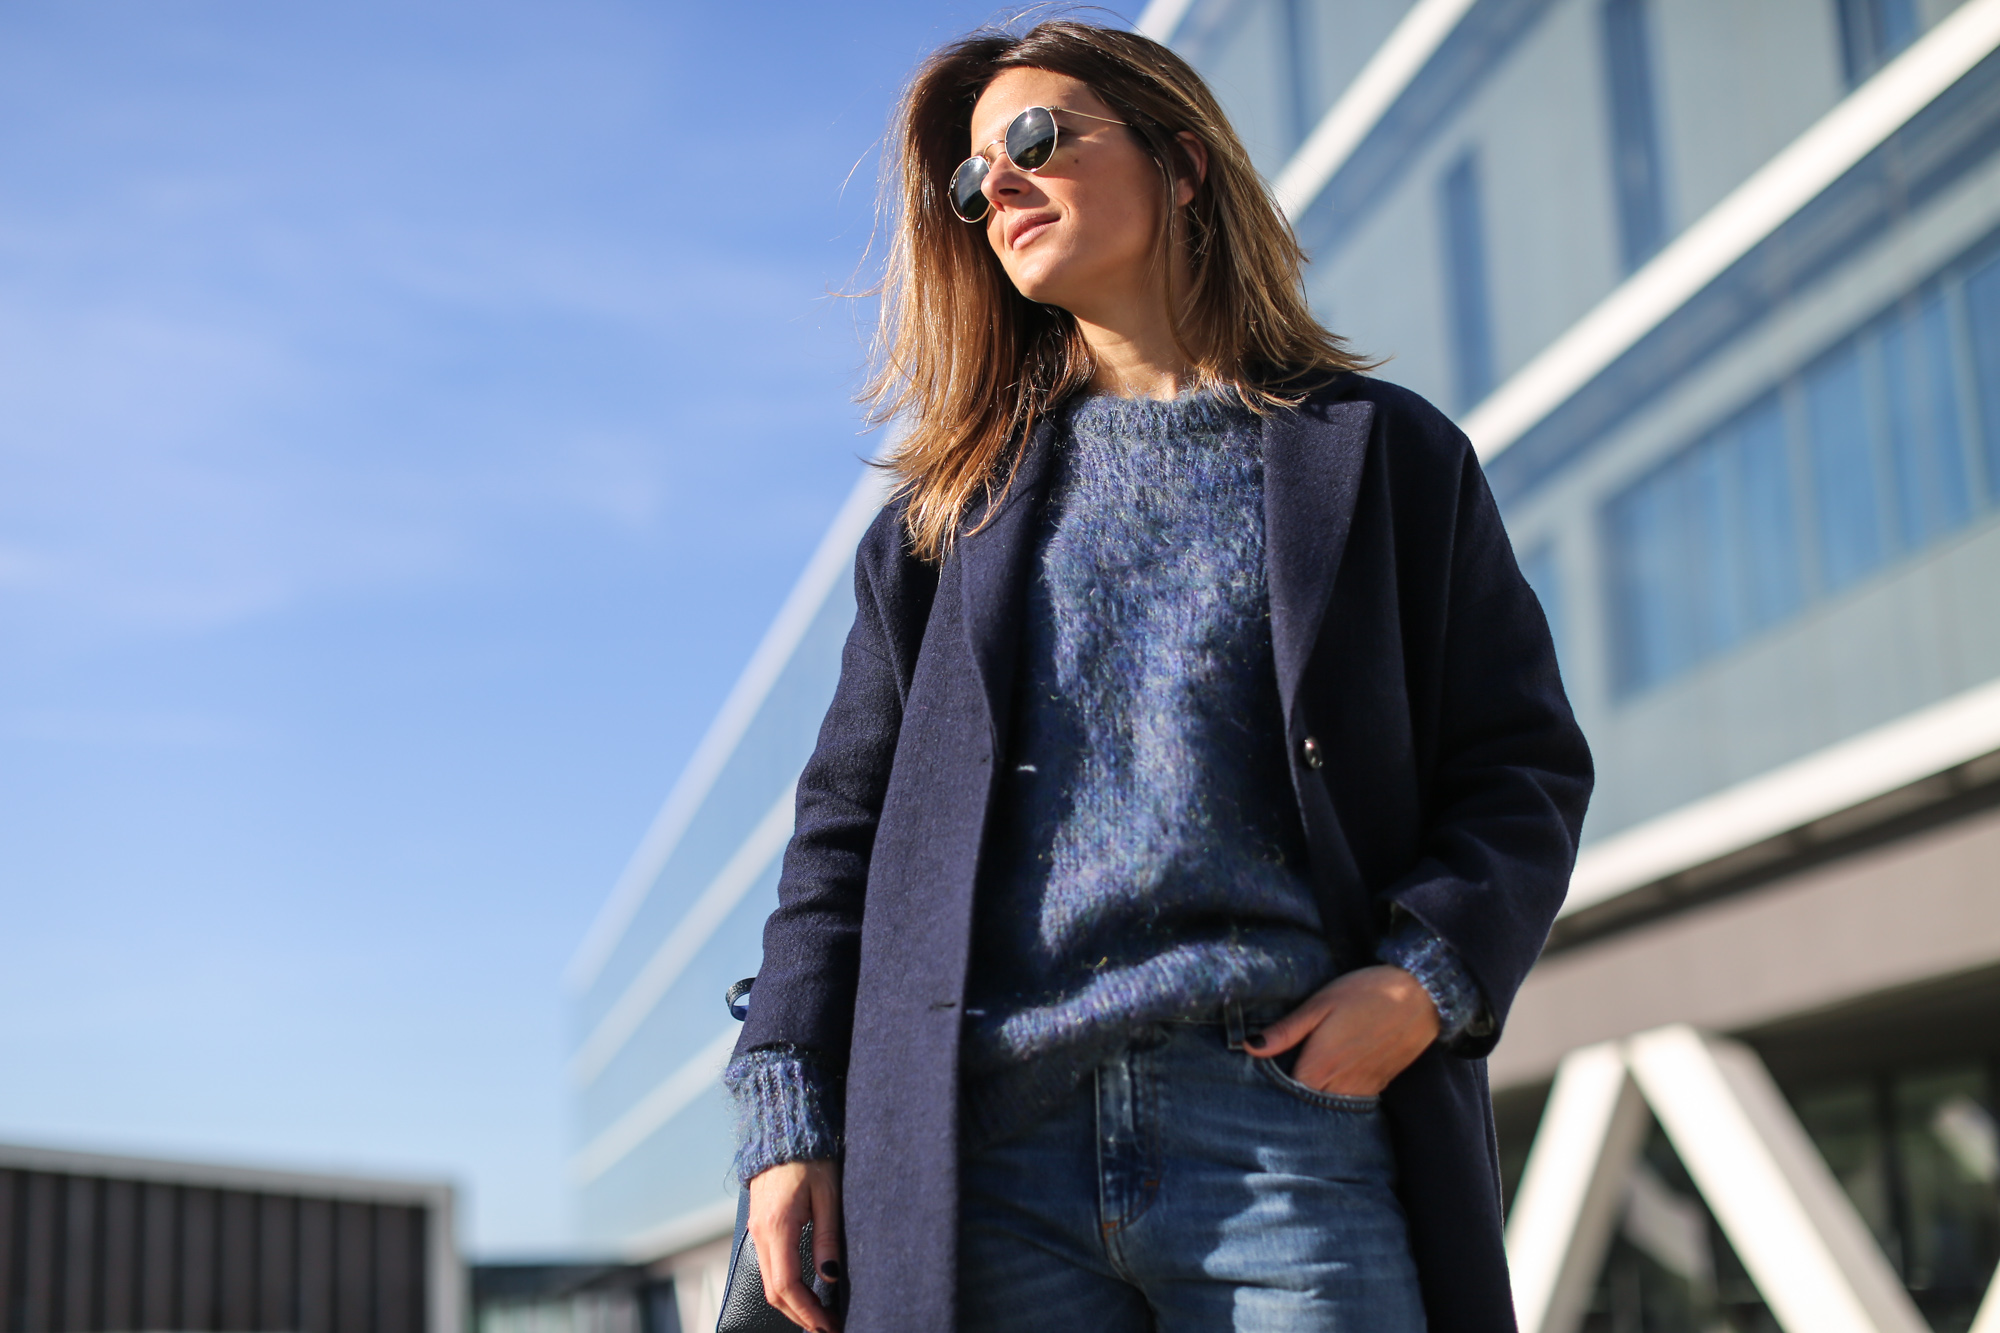 Clochet_streetstyle_masscob_navy_coat_trimmer_bilbao_acne_pop_jeans-10